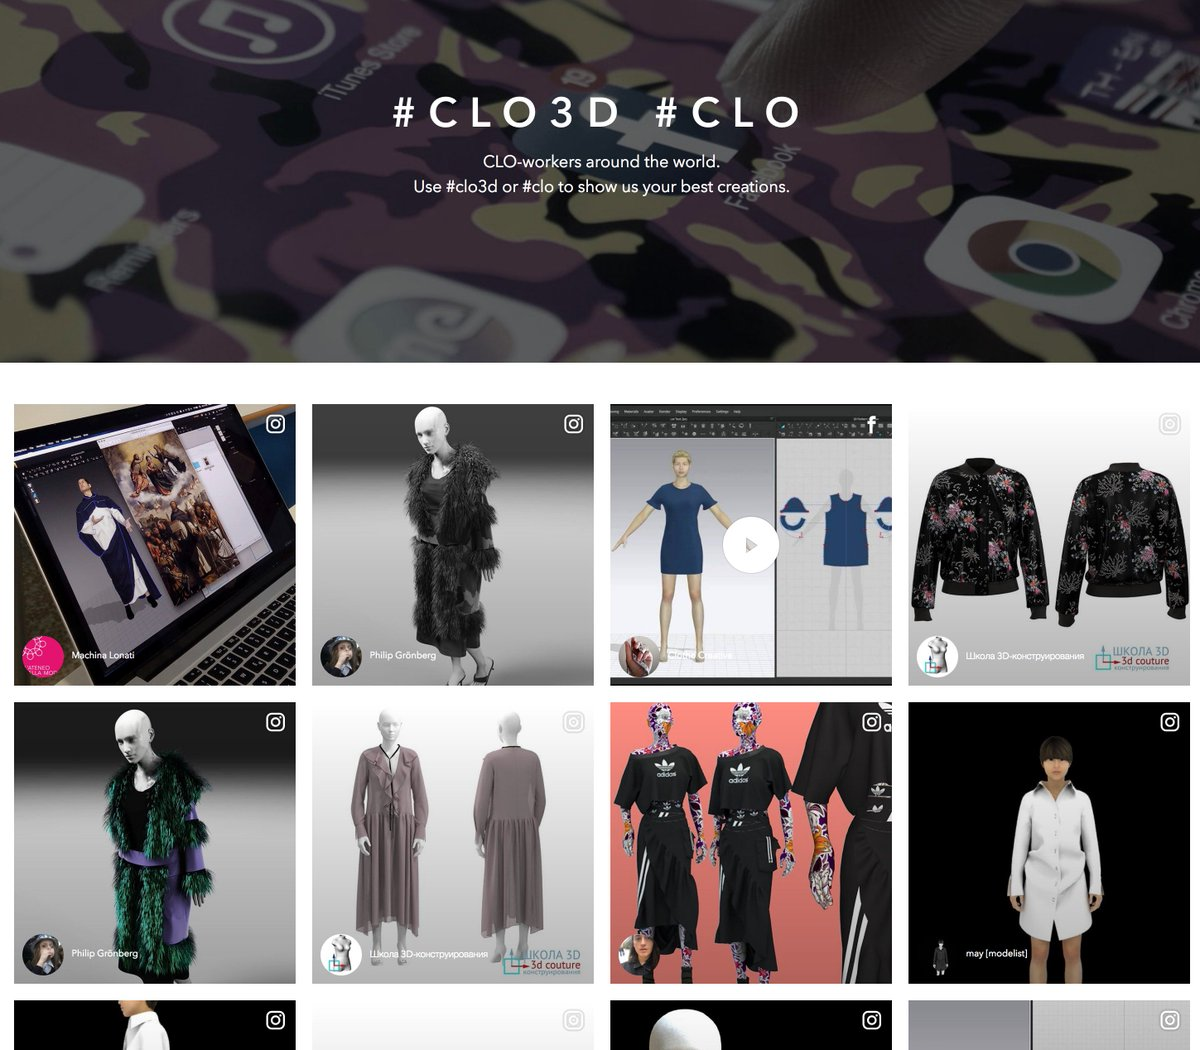 Clo On Twitter Clo3d Is The Only 3d Design Software Available For Public Download We Are Committed To Empowering Individual Designers And Freelancers Check Out Some Great Works By Our Users And